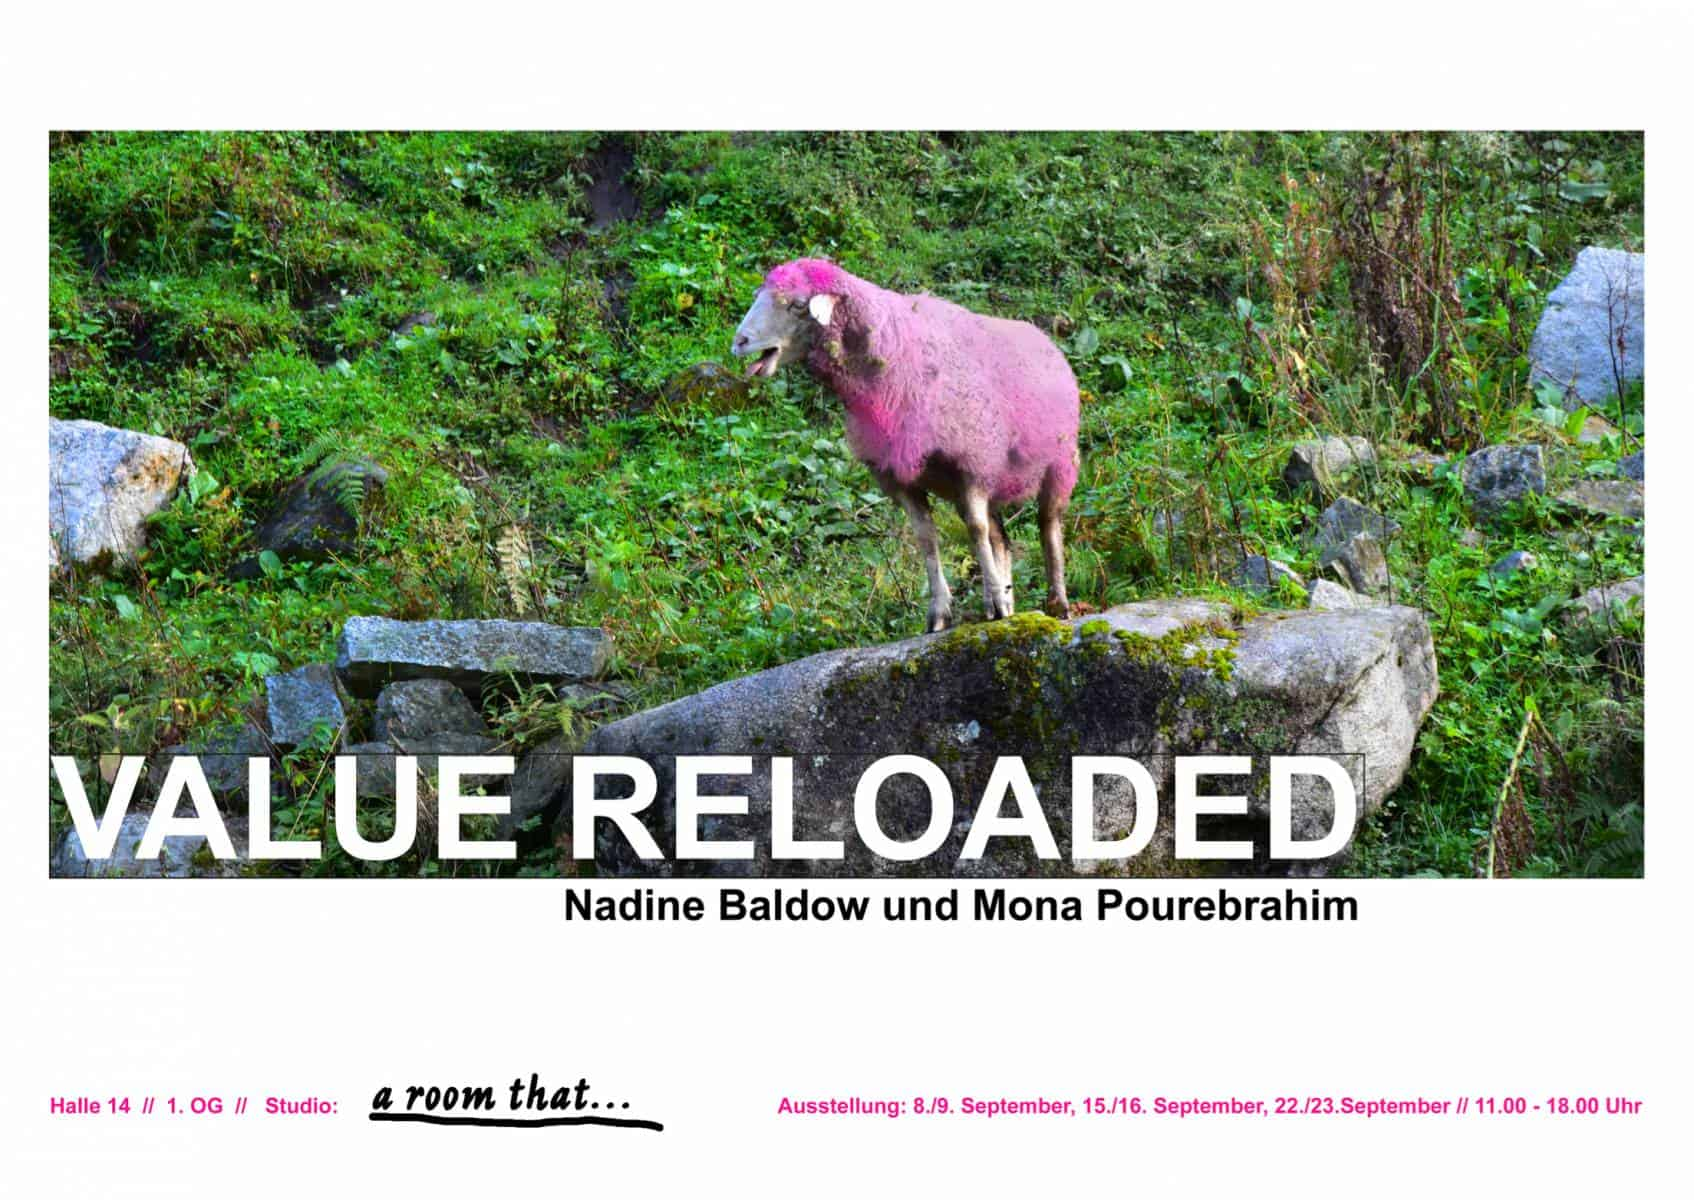 Nadine Baldow Value Reloaded Mona Pourebrahim